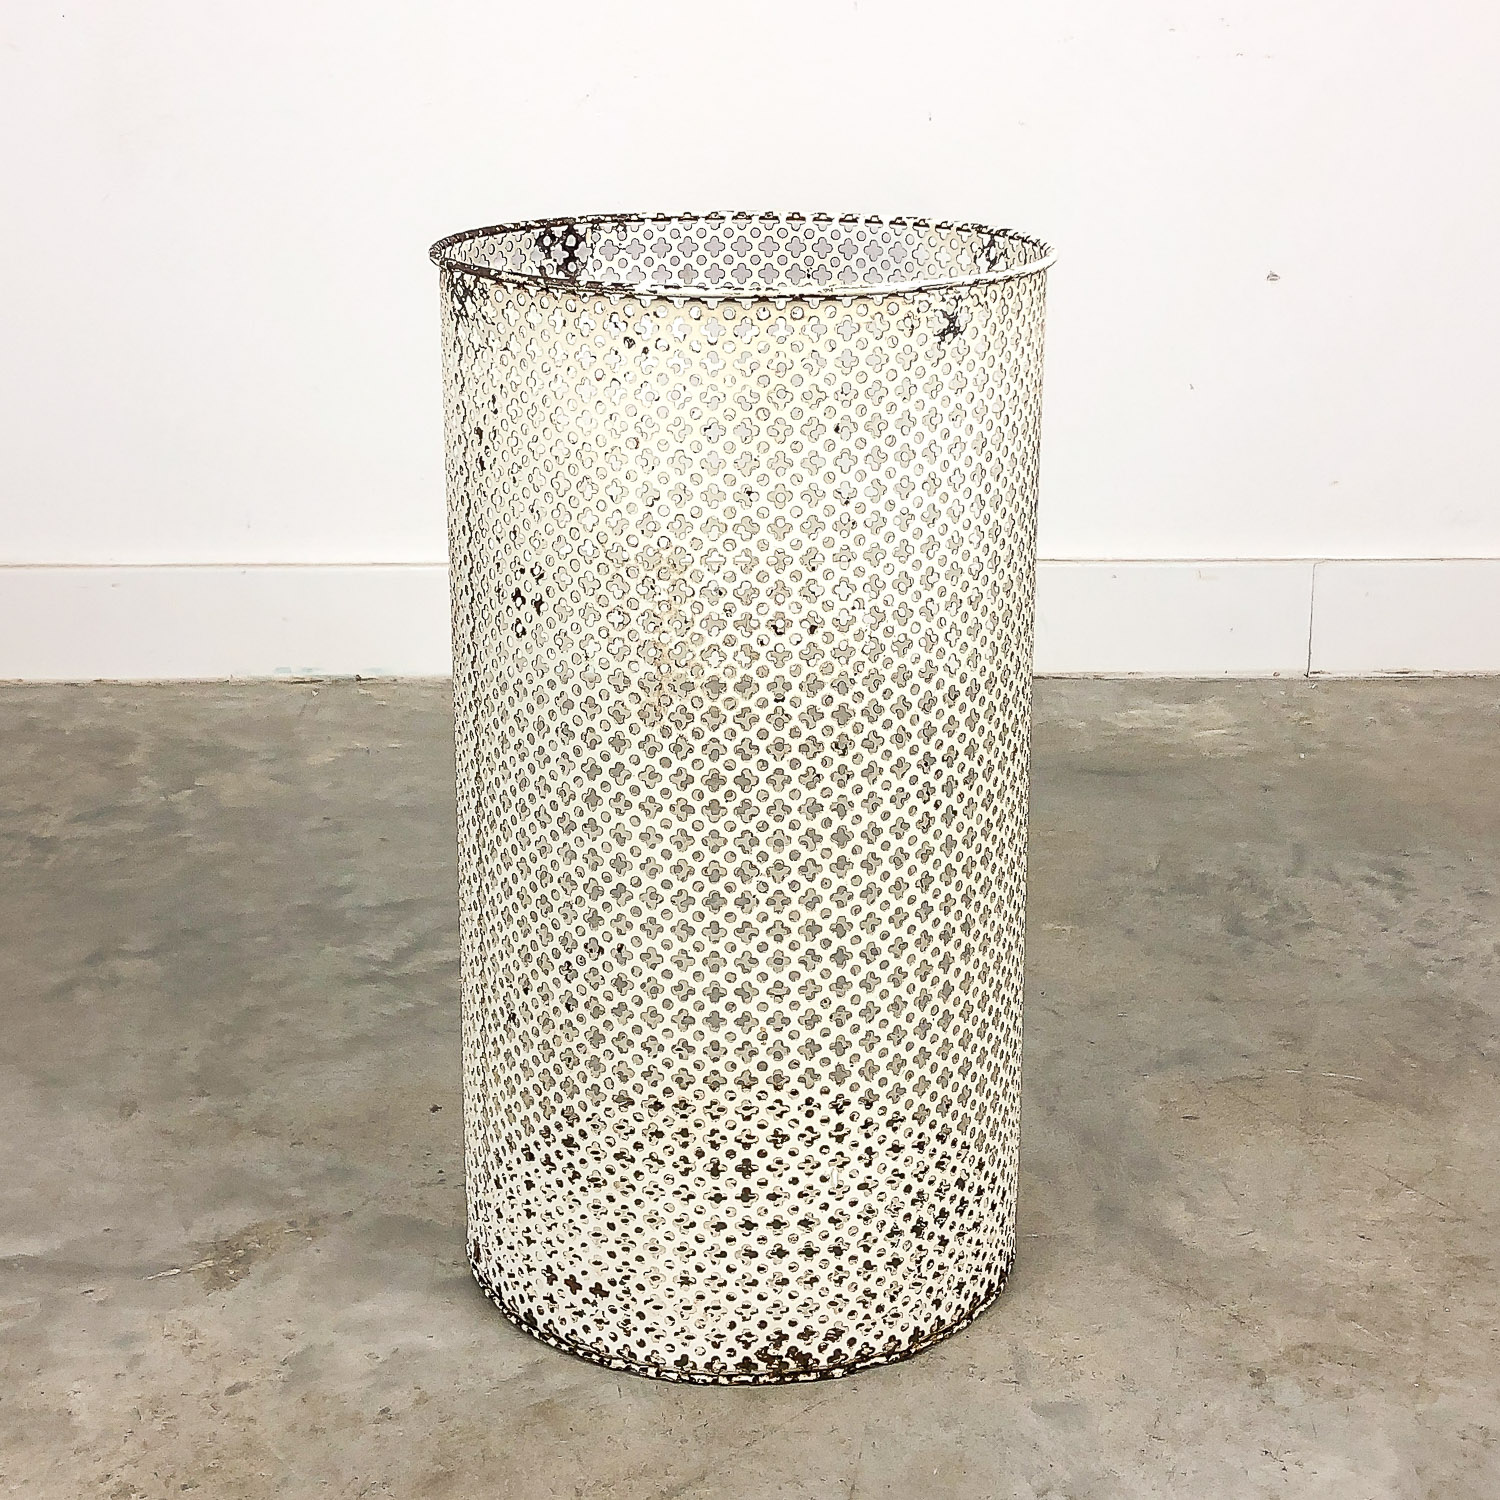 Vintage trash can by Mathieu Matégot, 1950's